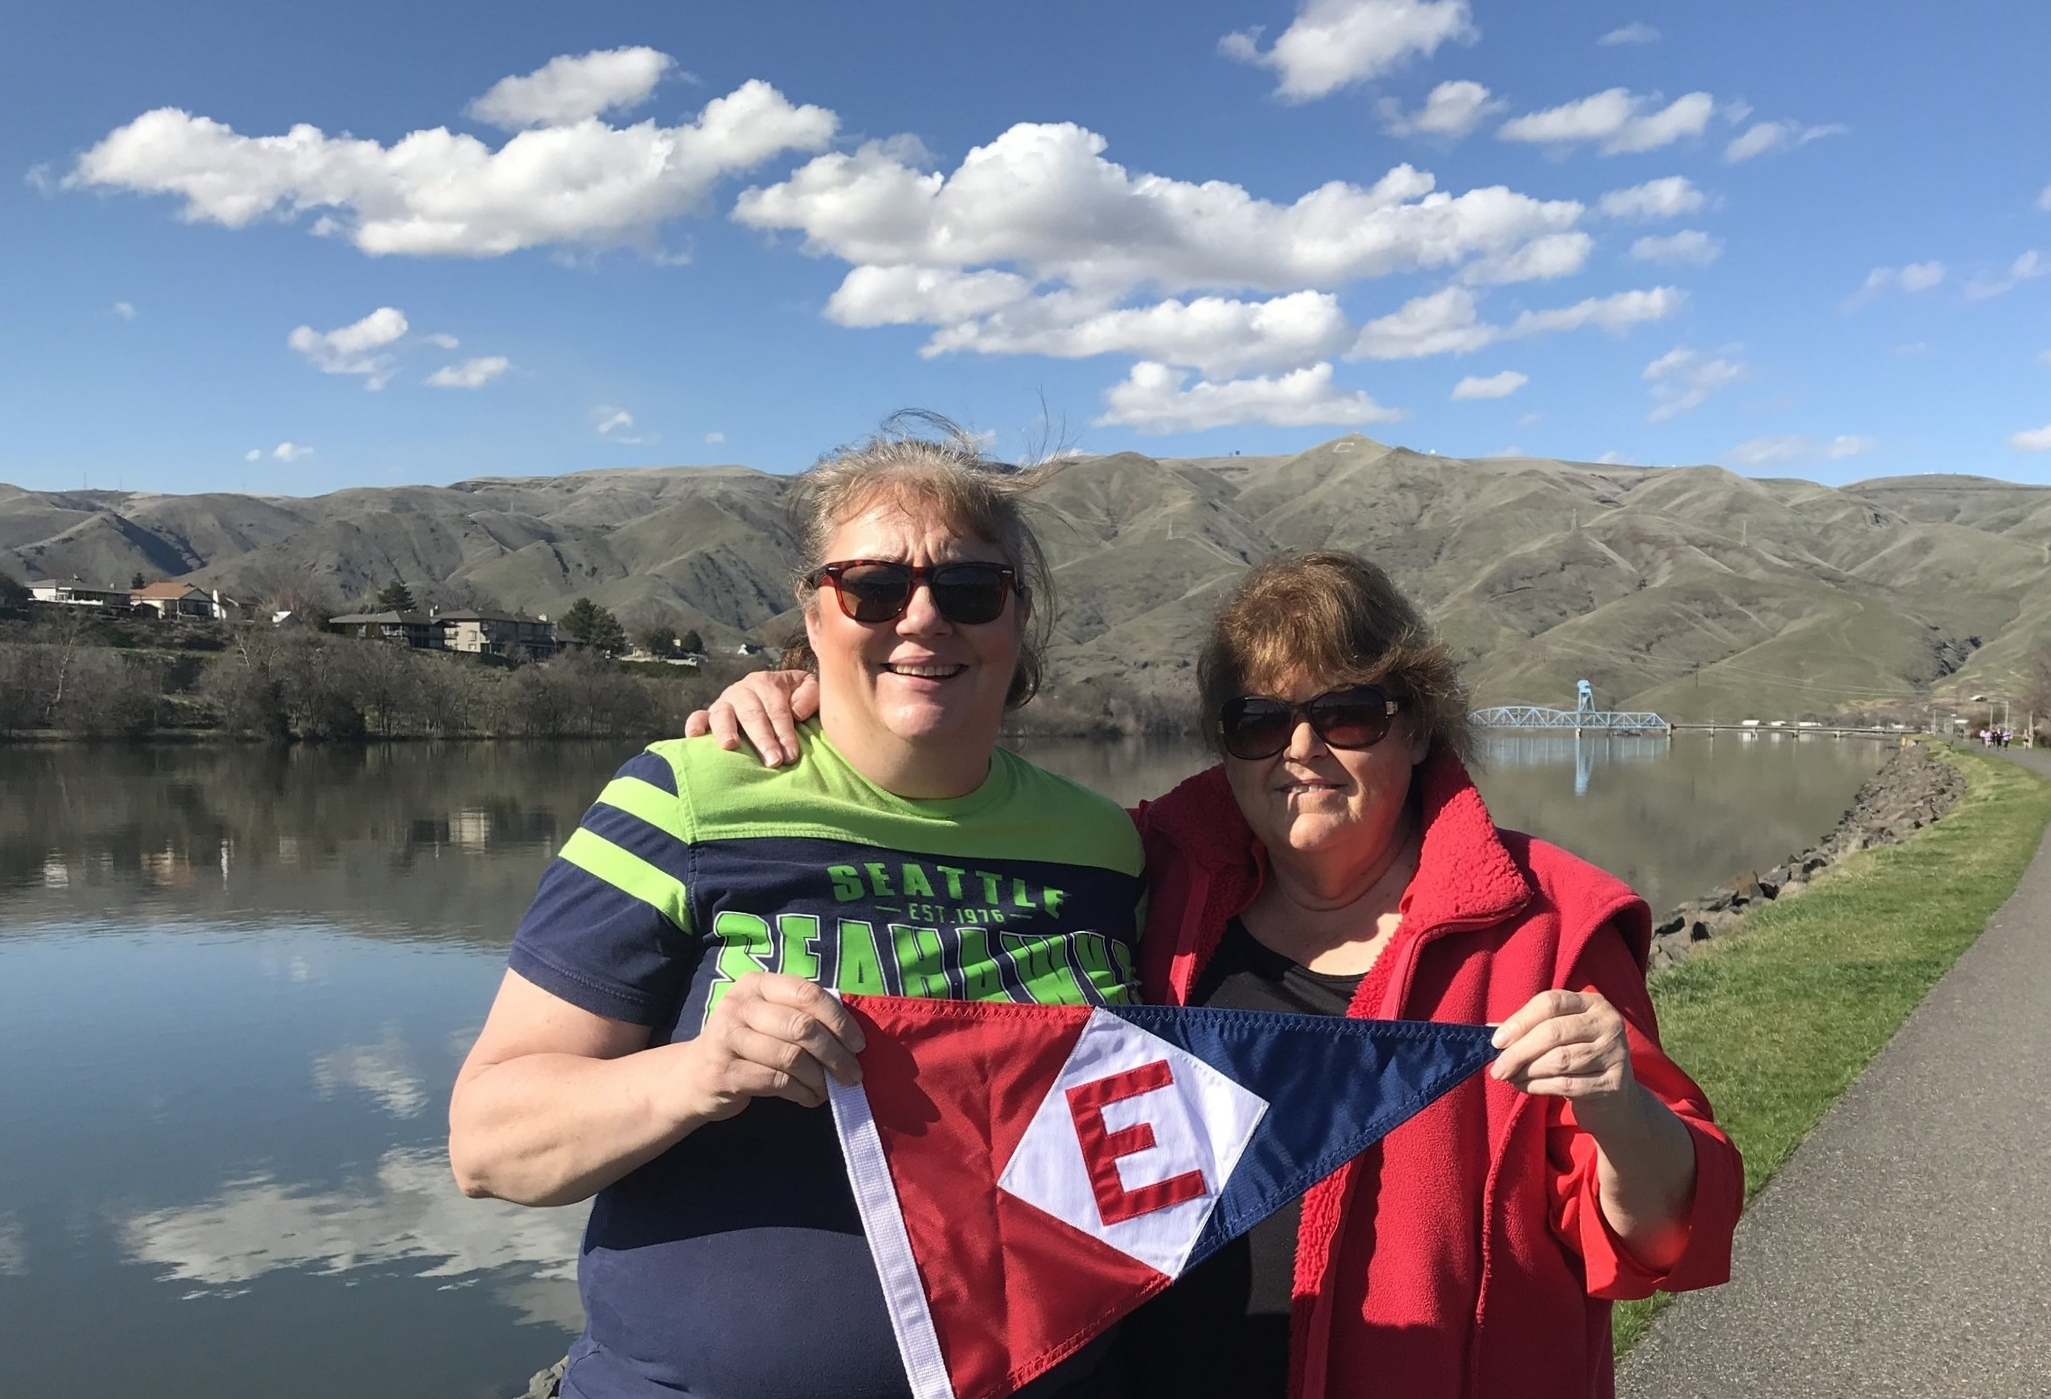 Janet Mitchell and Leta Sellers share their EYC pride at the Snake River in Idaho.